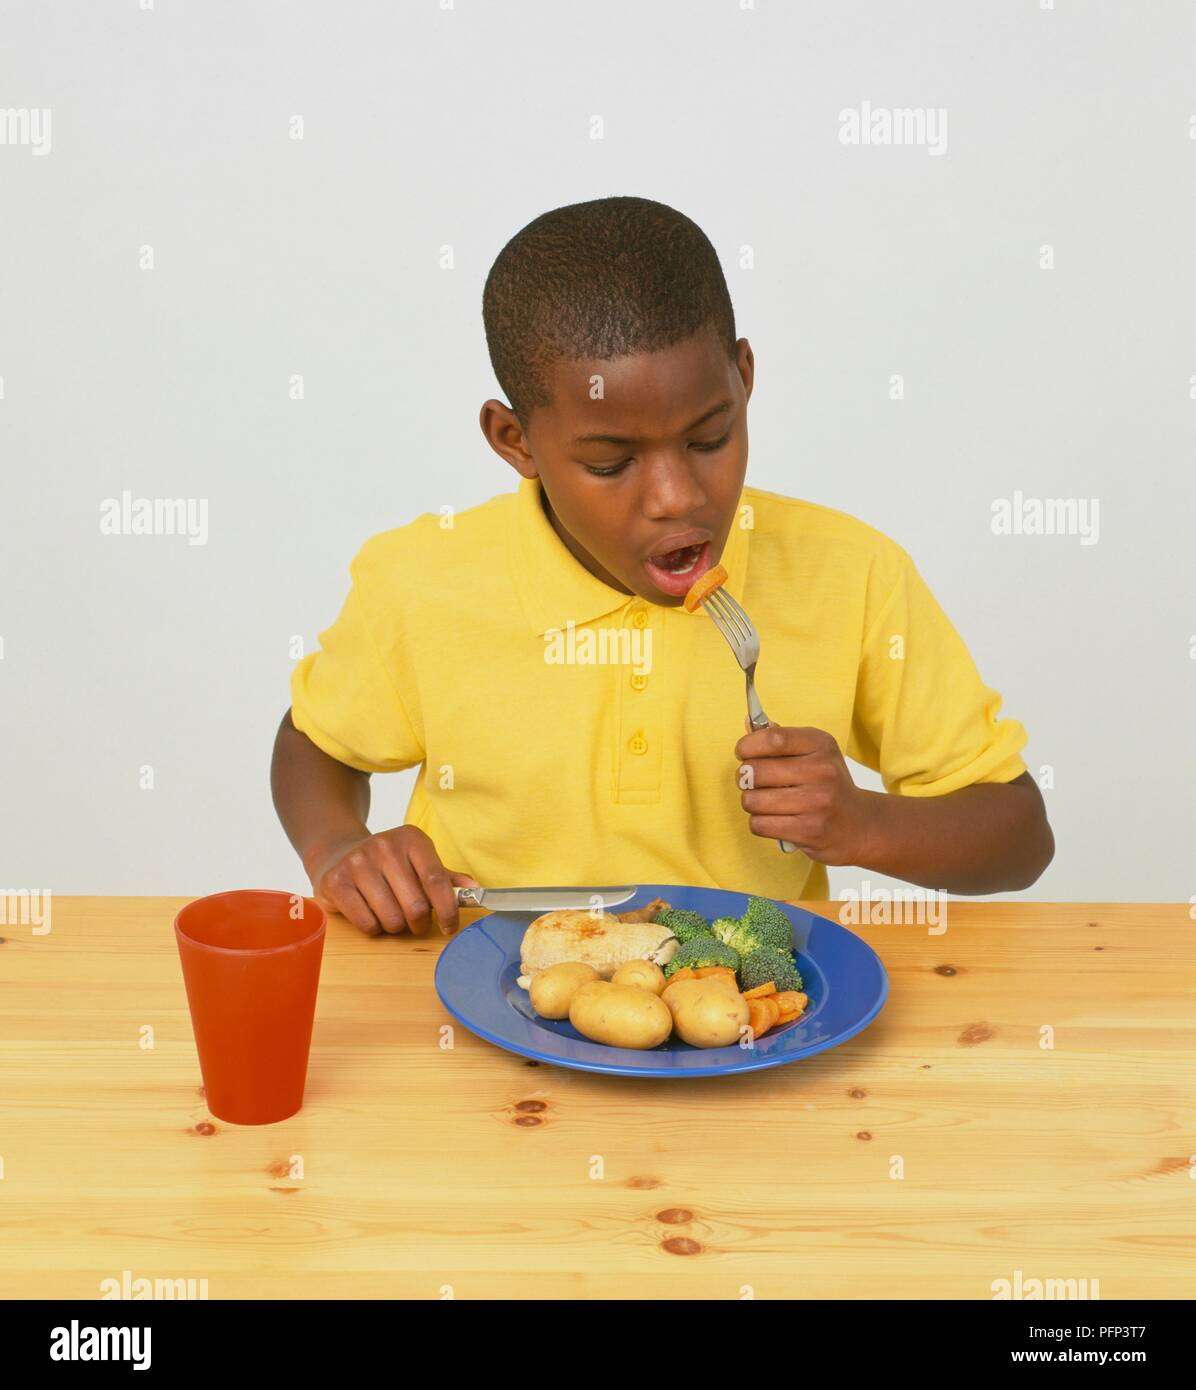 Boy in polo shirt sat at table eating from plate of vegetables and meat Stock Photo